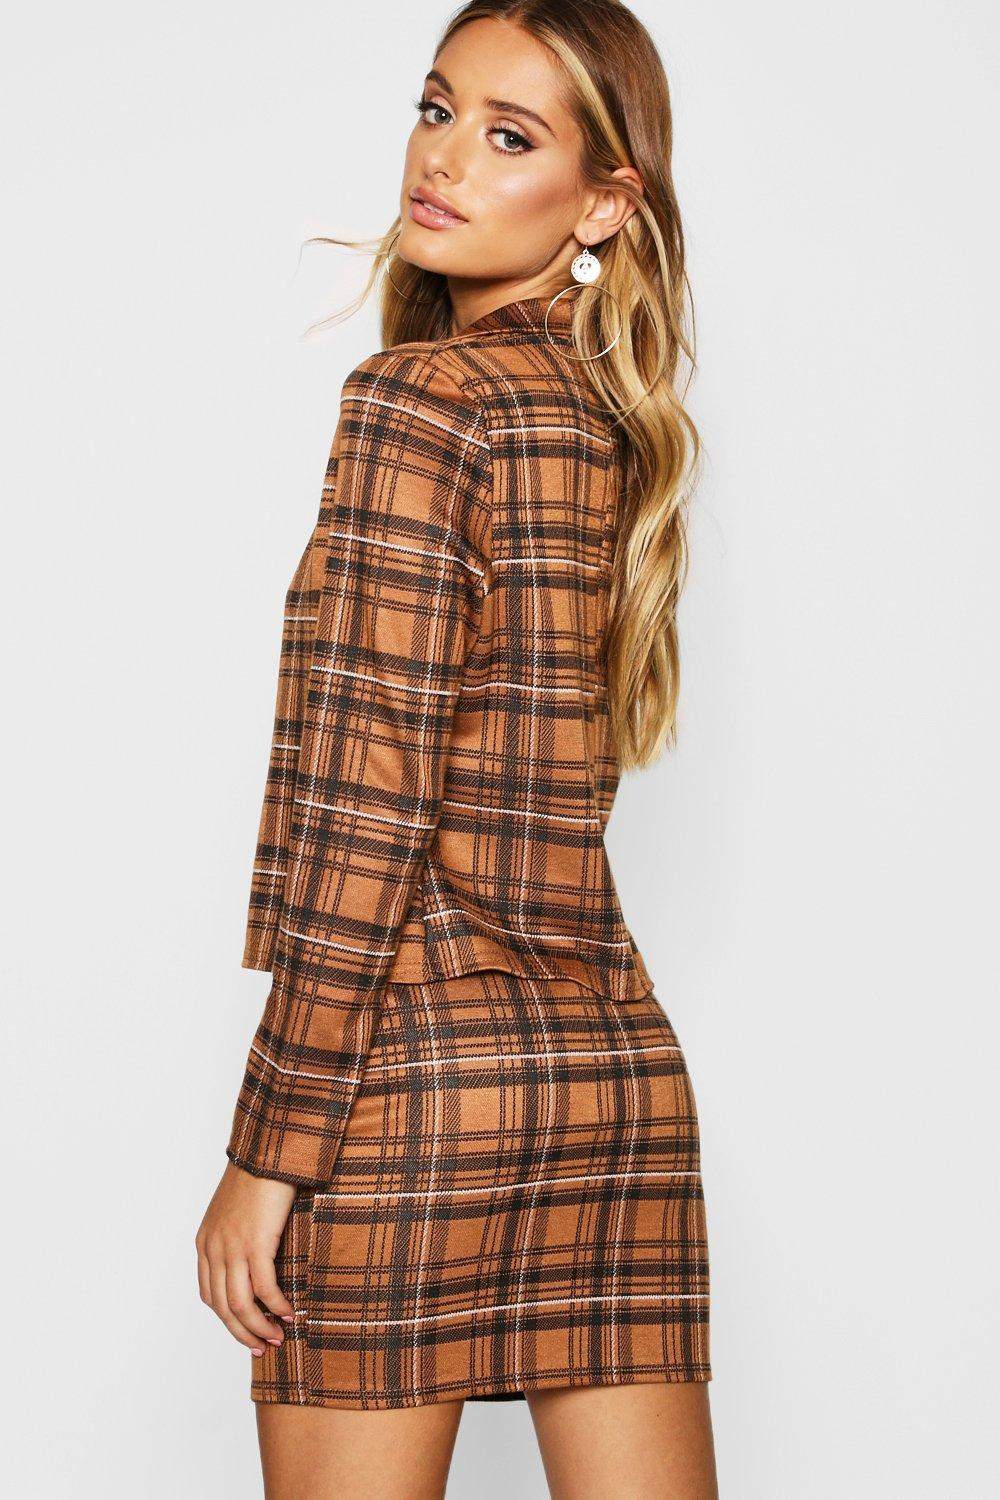 50dbc9877adb Boohoo Knitted Check Blazer And Skirt Set in Brown - Lyst